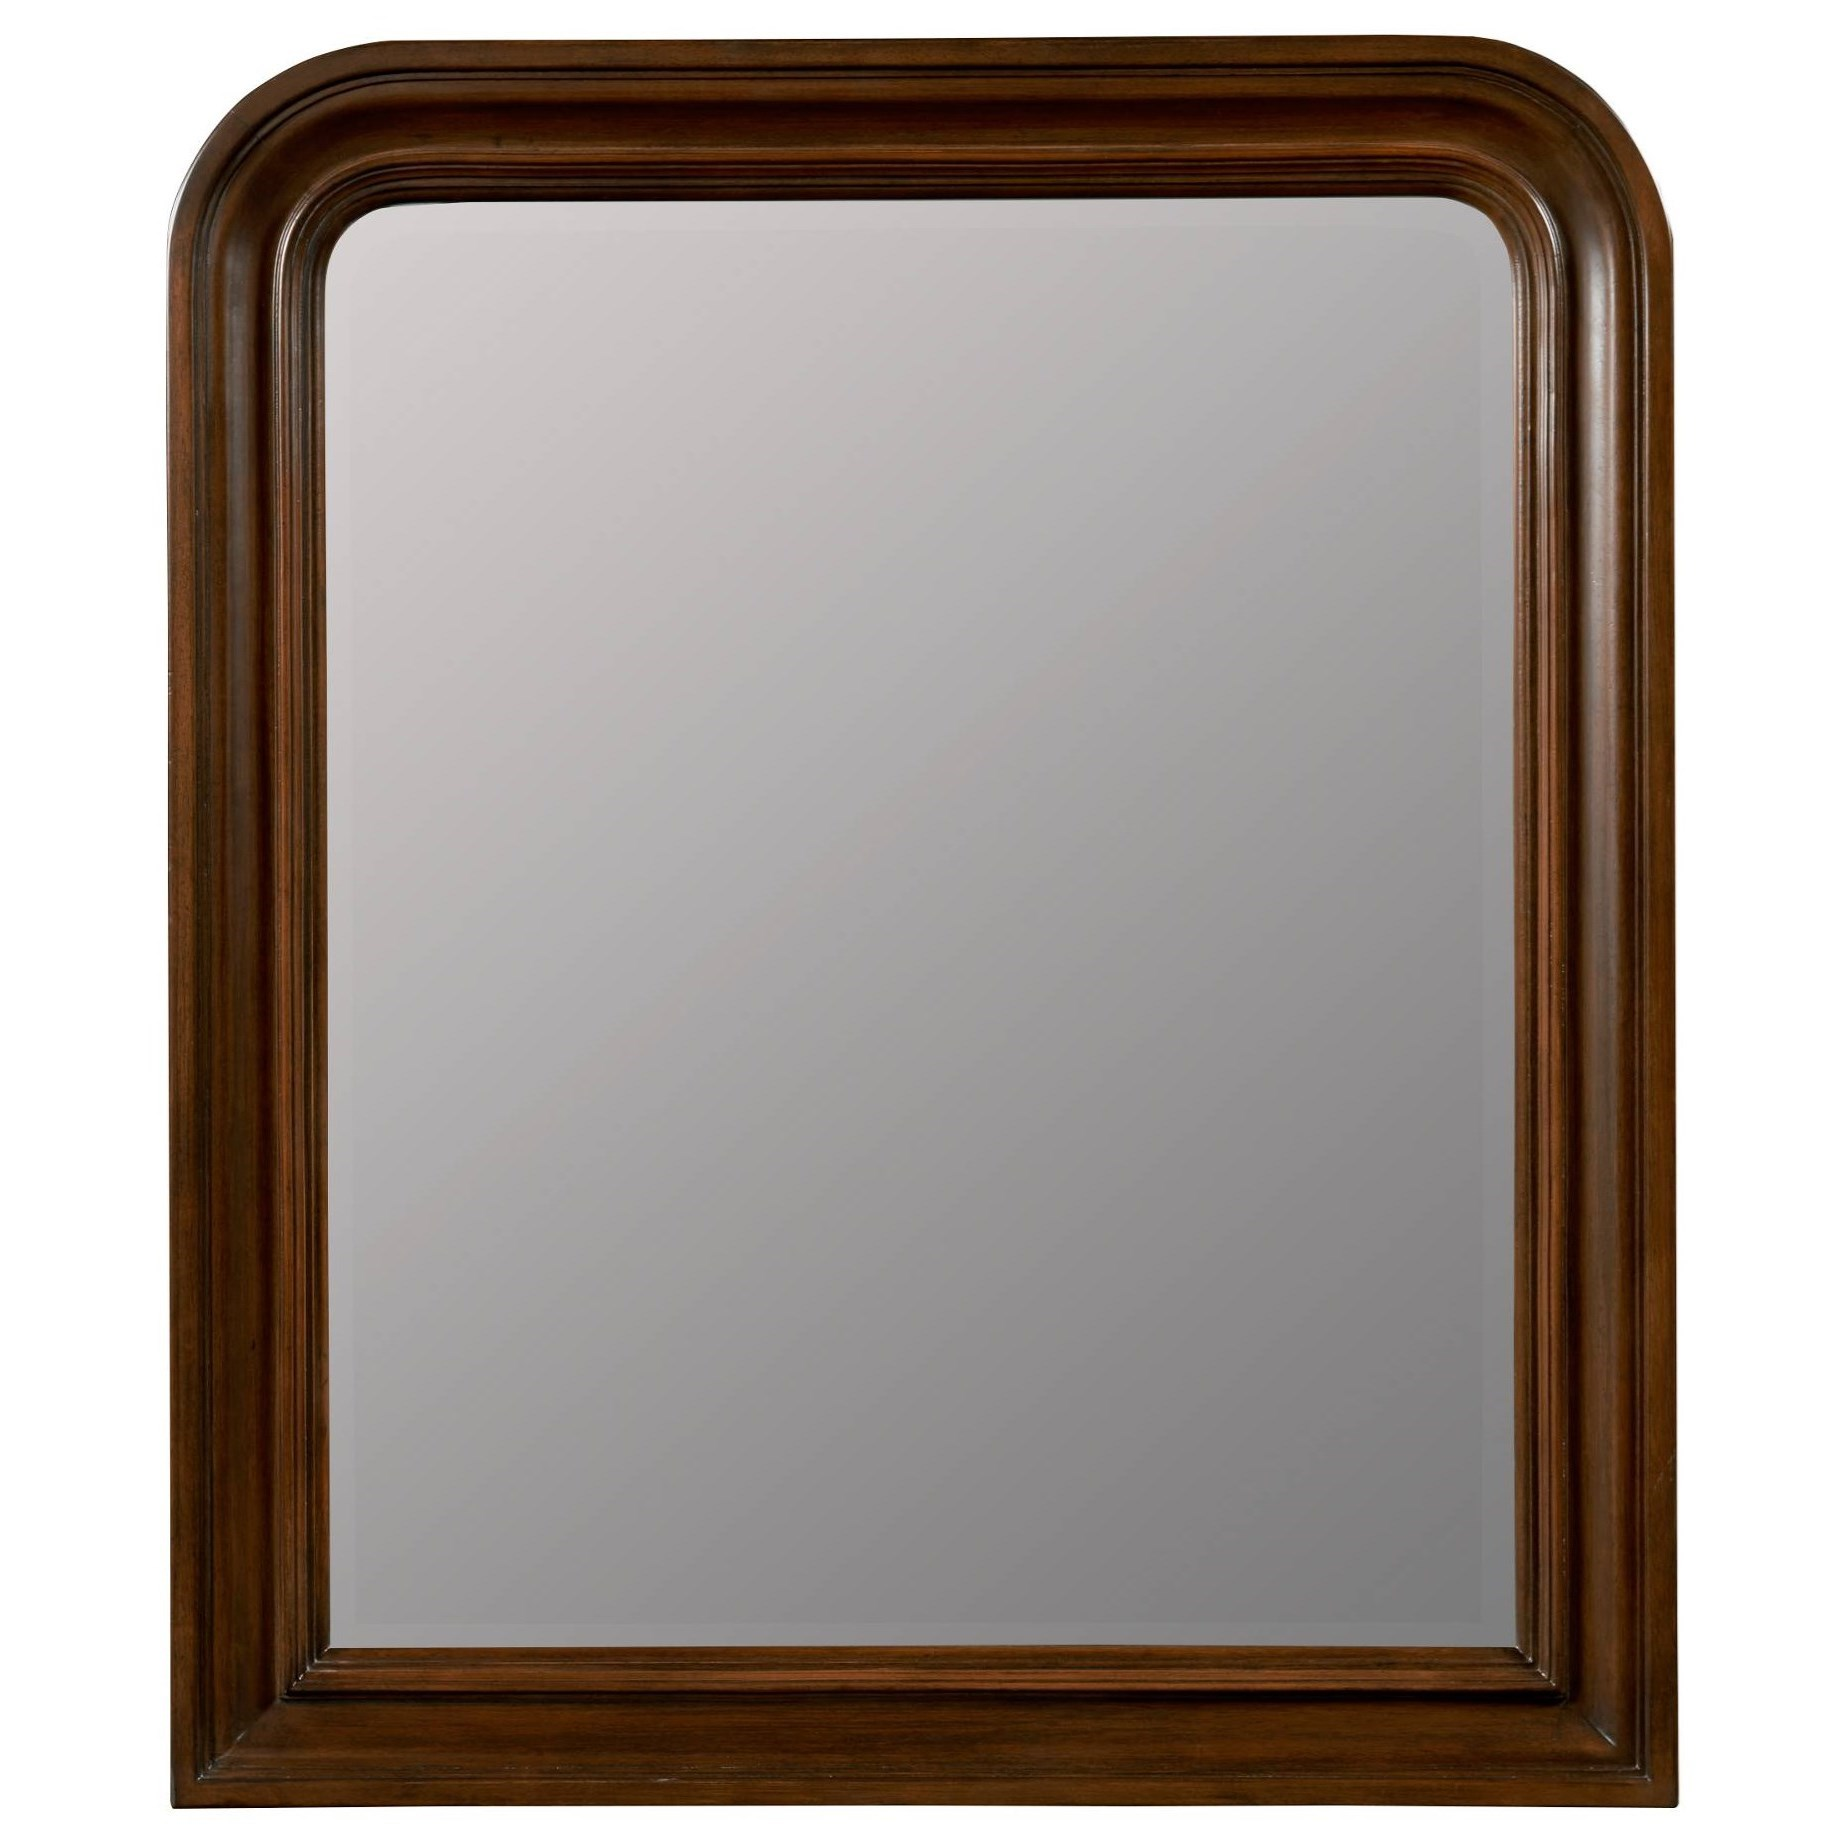 Stone & Leigh Furniture Teaberry Lane Mirror - Item Number: 575-13-30